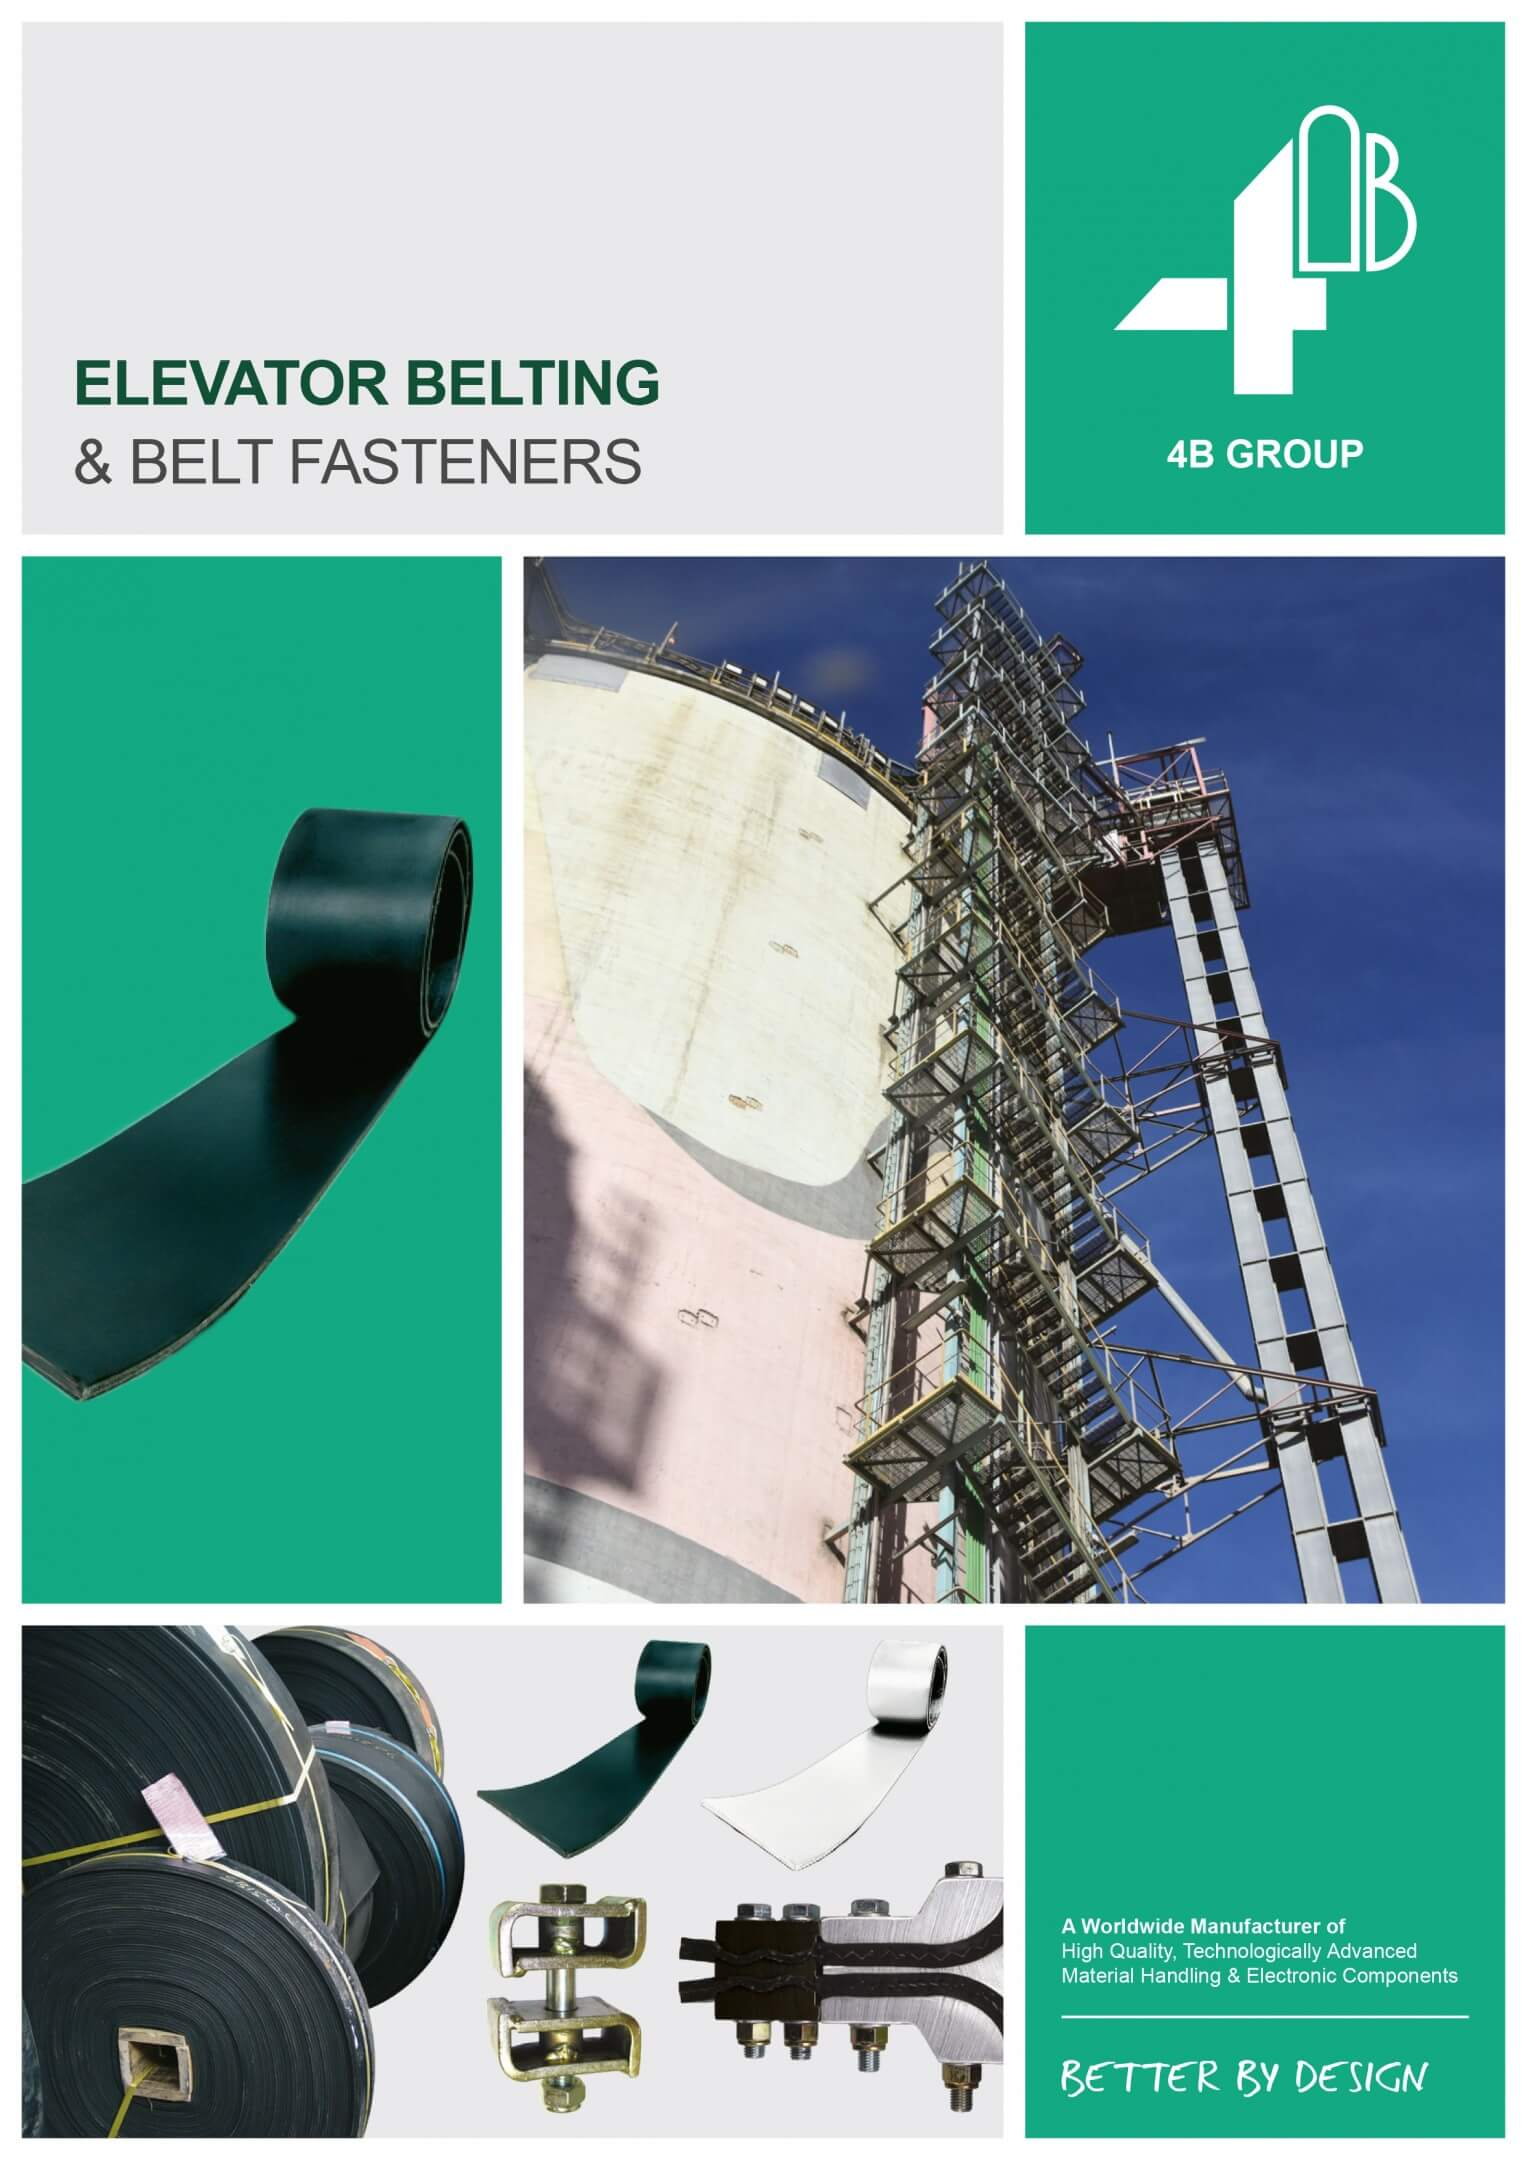 4B elevator belting catalogue